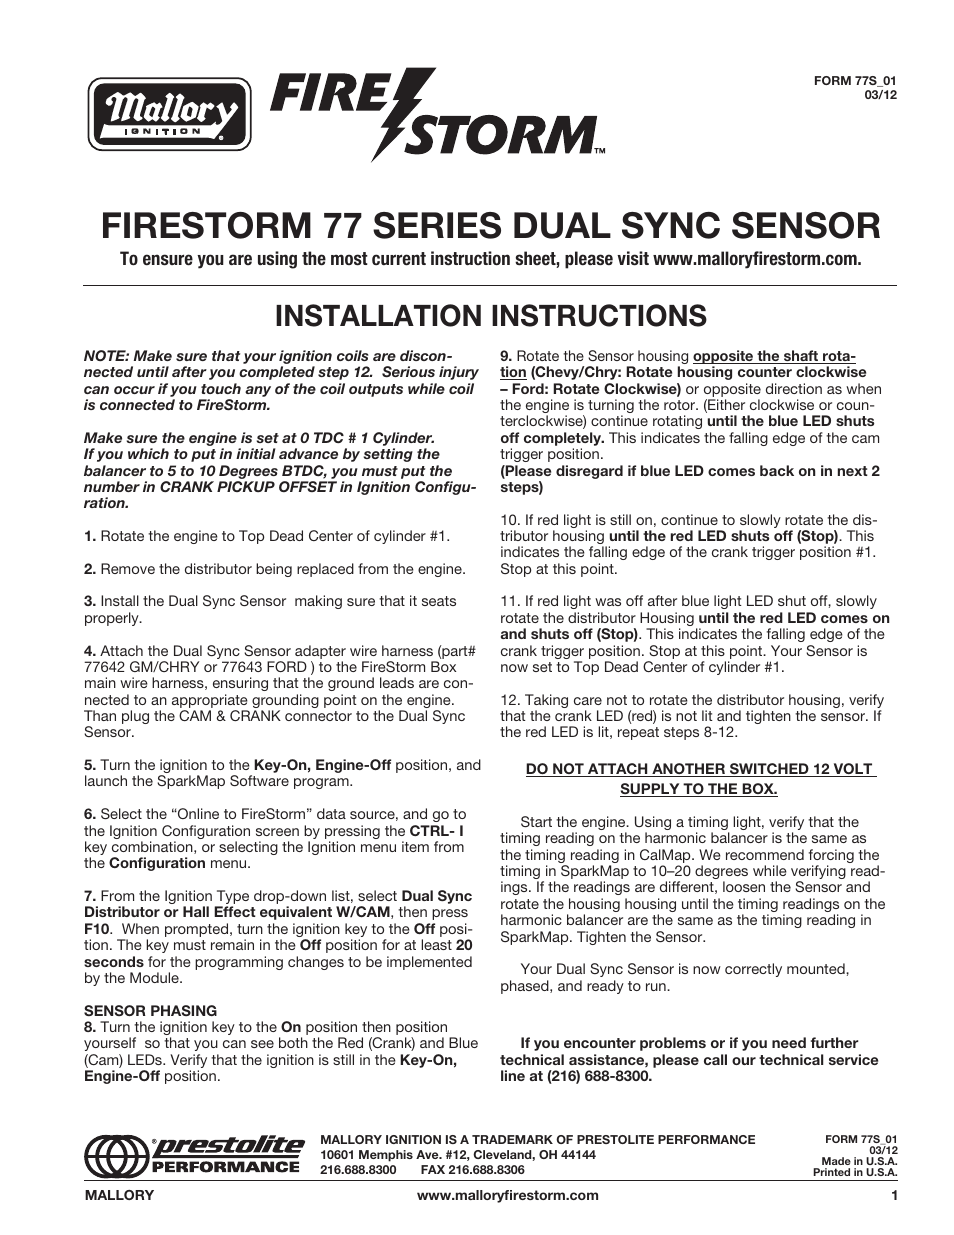 medium resolution of mallory ignition mallory firestorm 77 series dual sync sensor usermallory ignition mallory firestorm 77 series dual